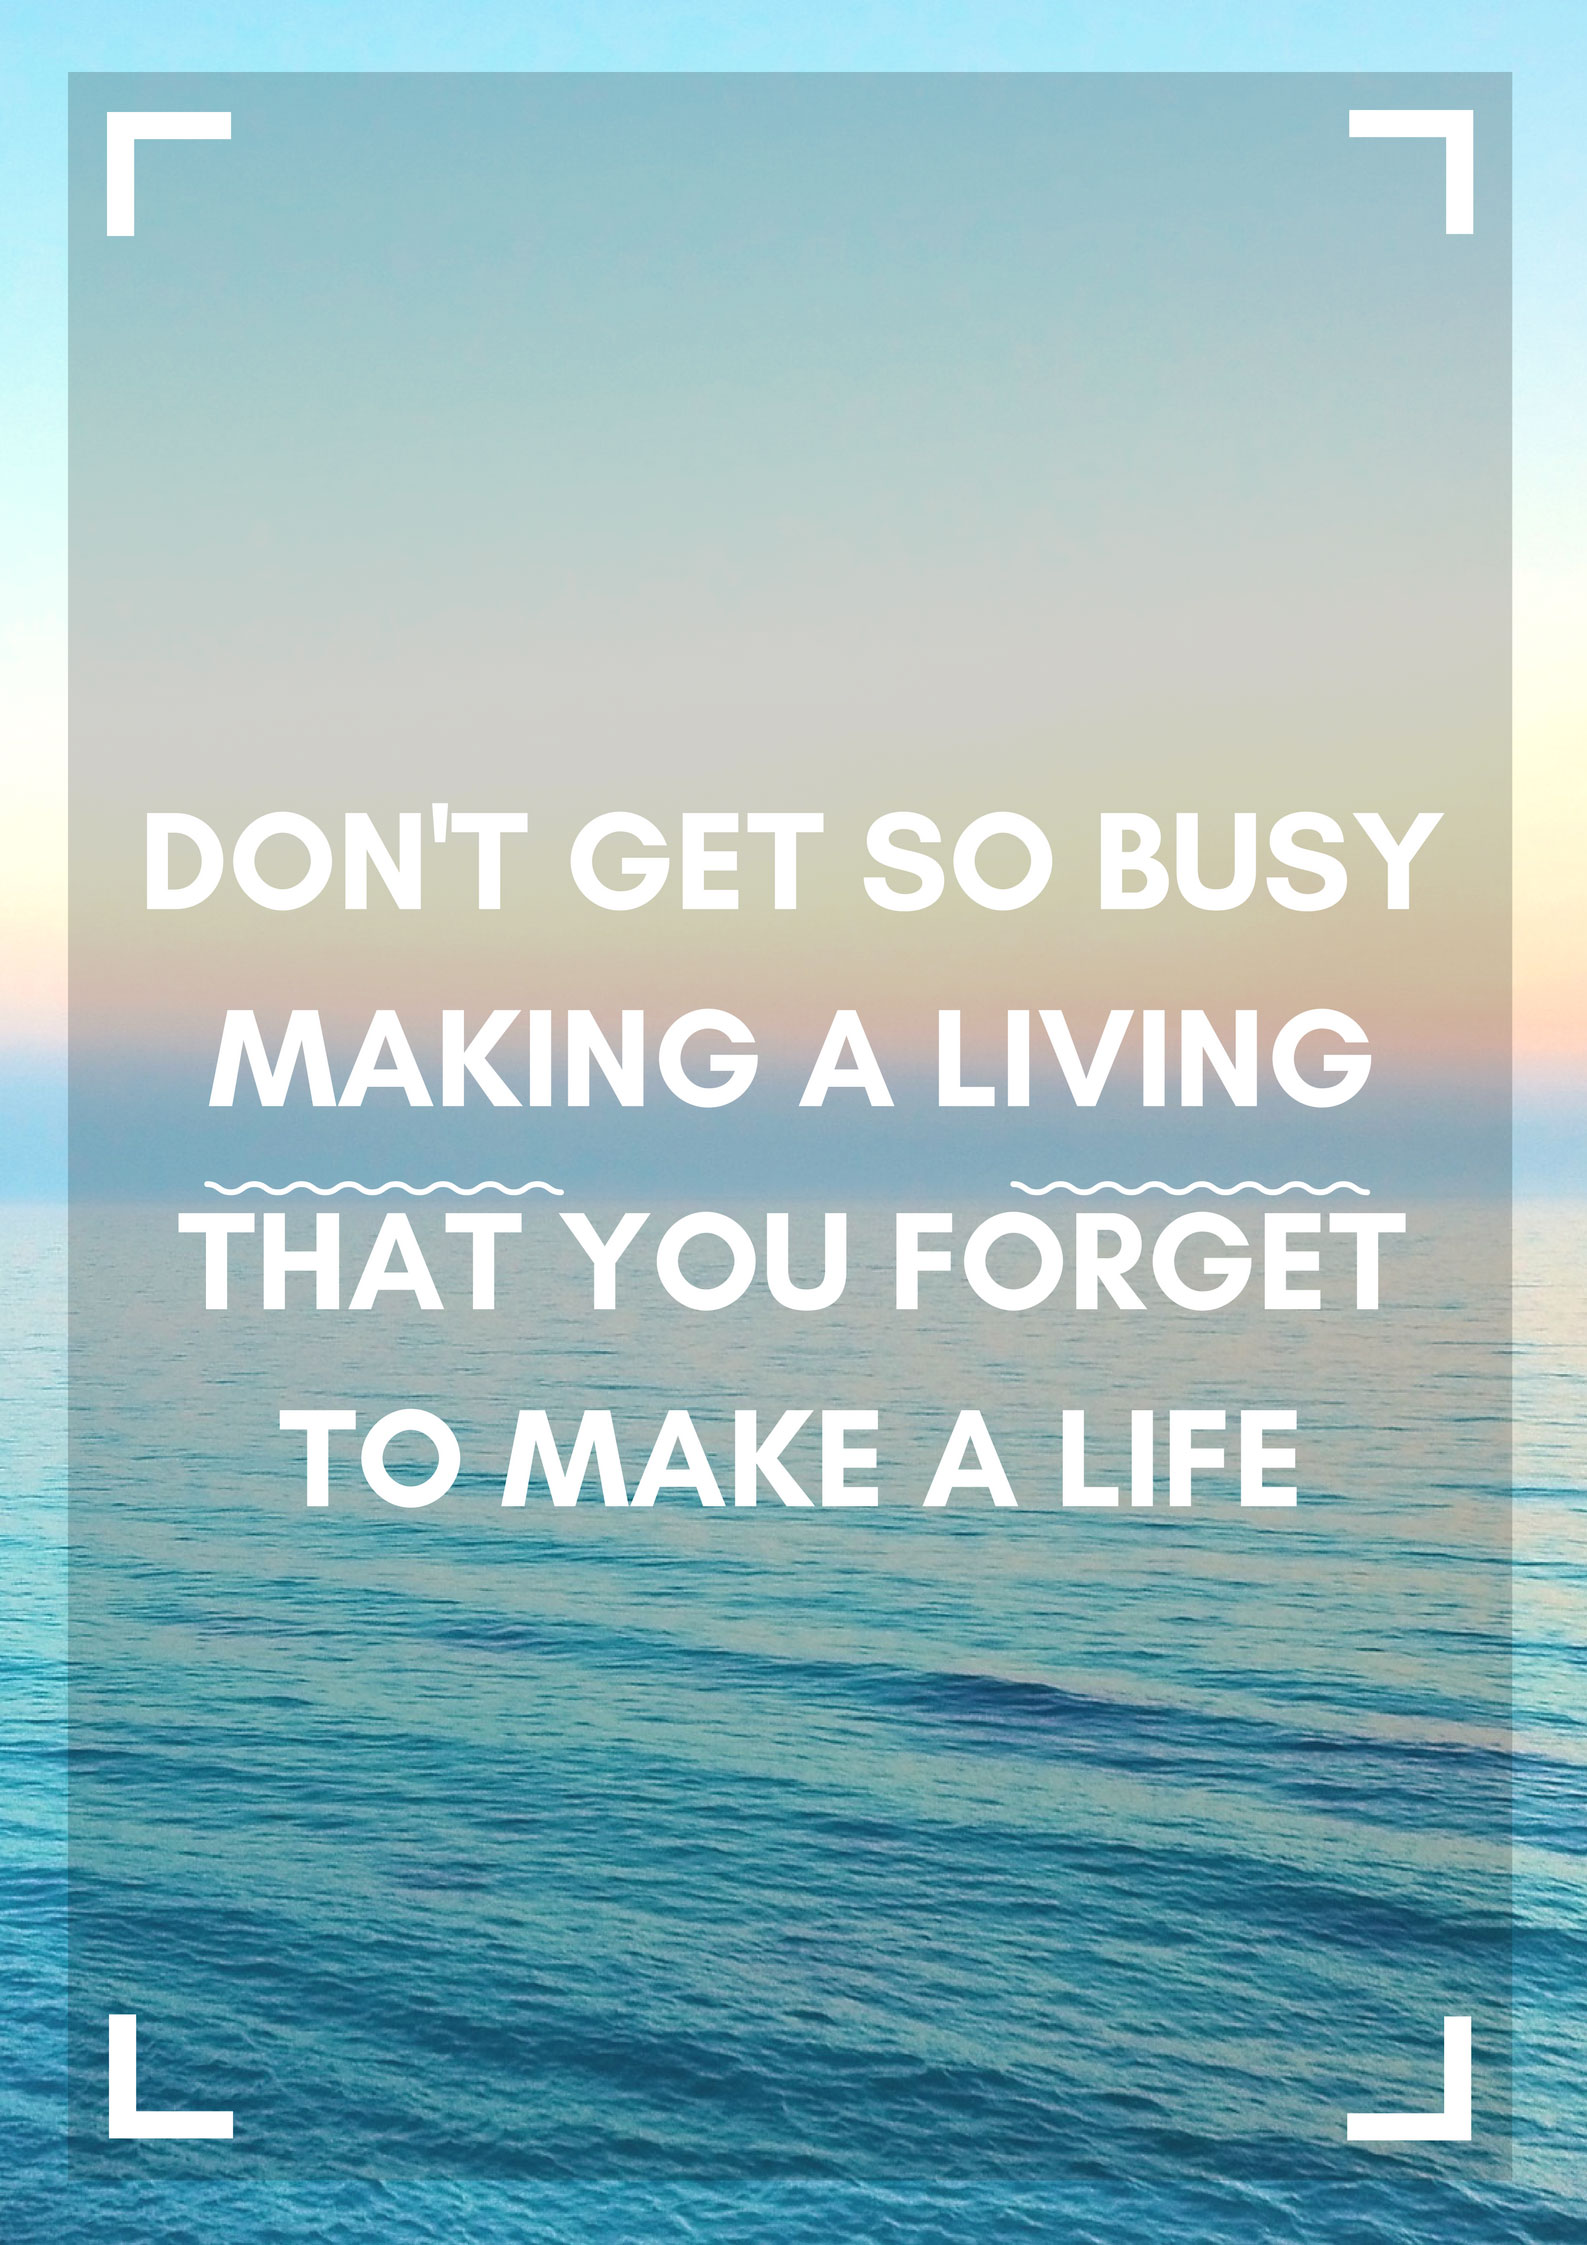 Don't get so busy making a living that you forget to make a life